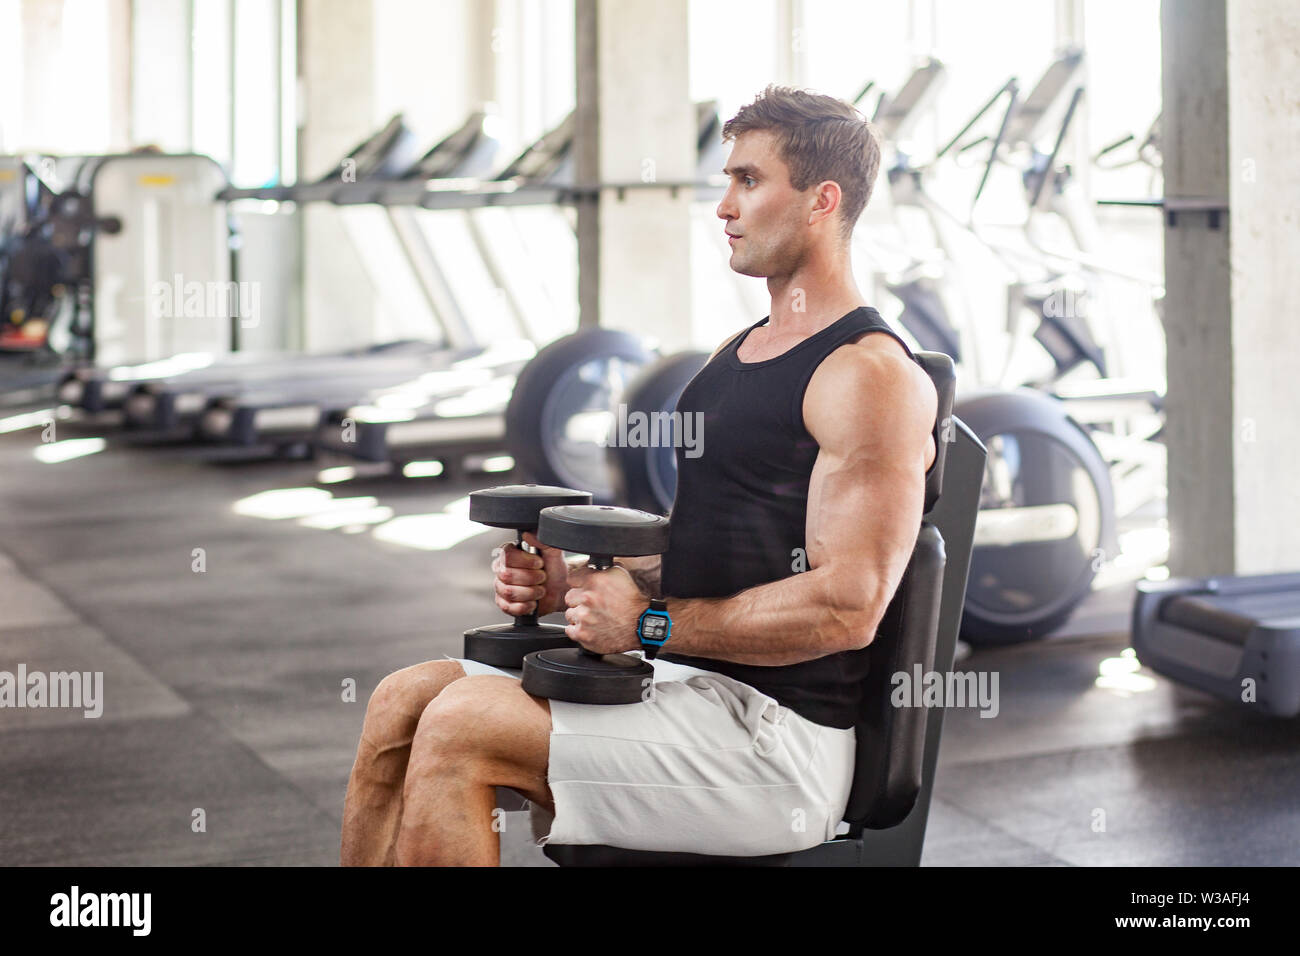 Side view portrait of young adult man muscular built handsome athlete working out in a gym, sitting on bench and holding two dumbbell on the knees. in Stock Photo